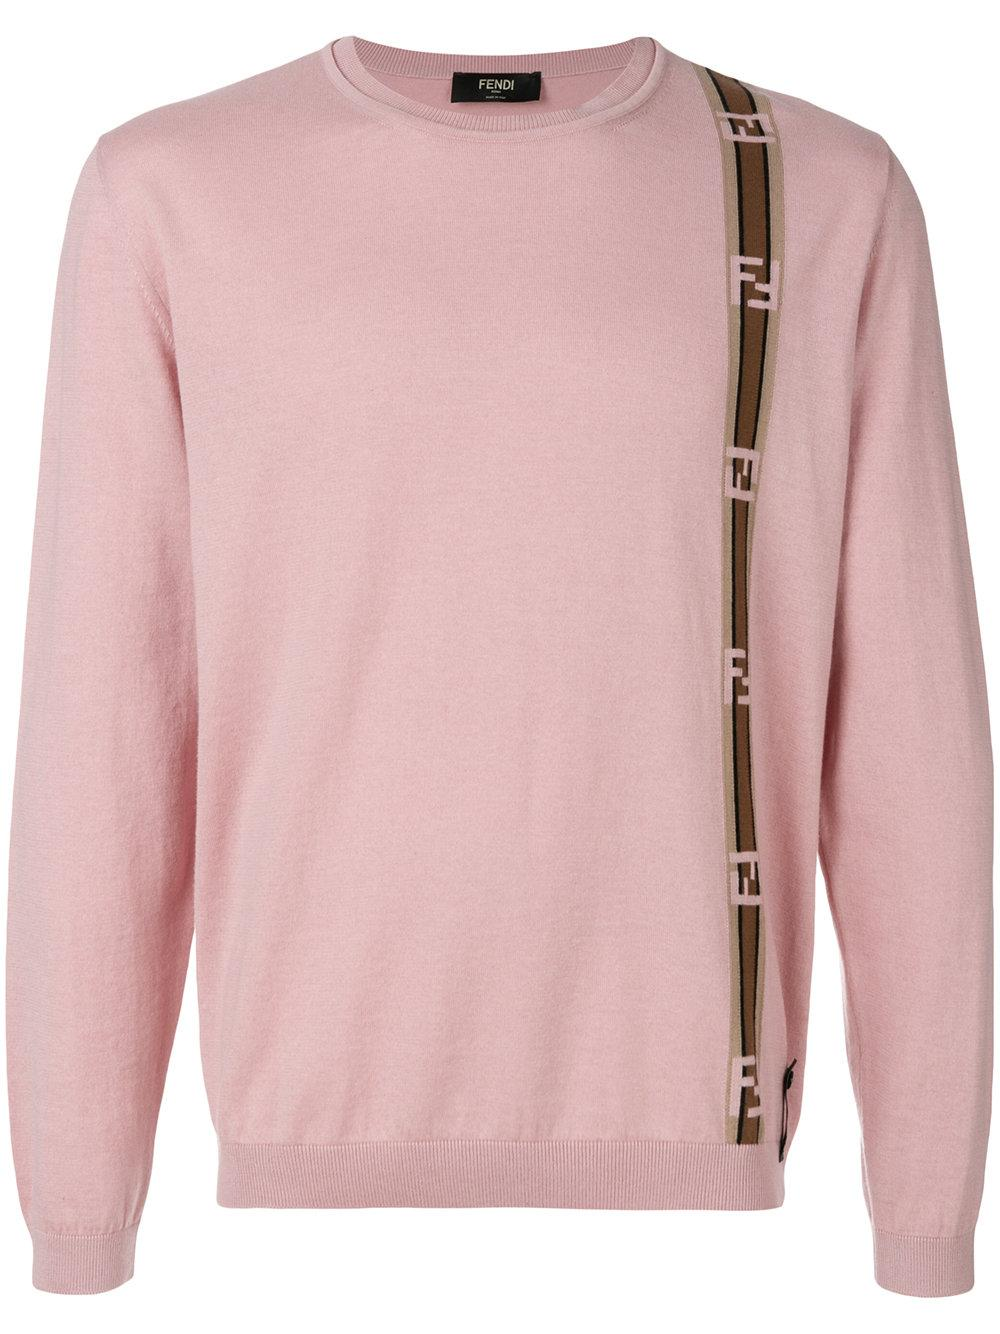 Fendi Forever  Sweater - Pink